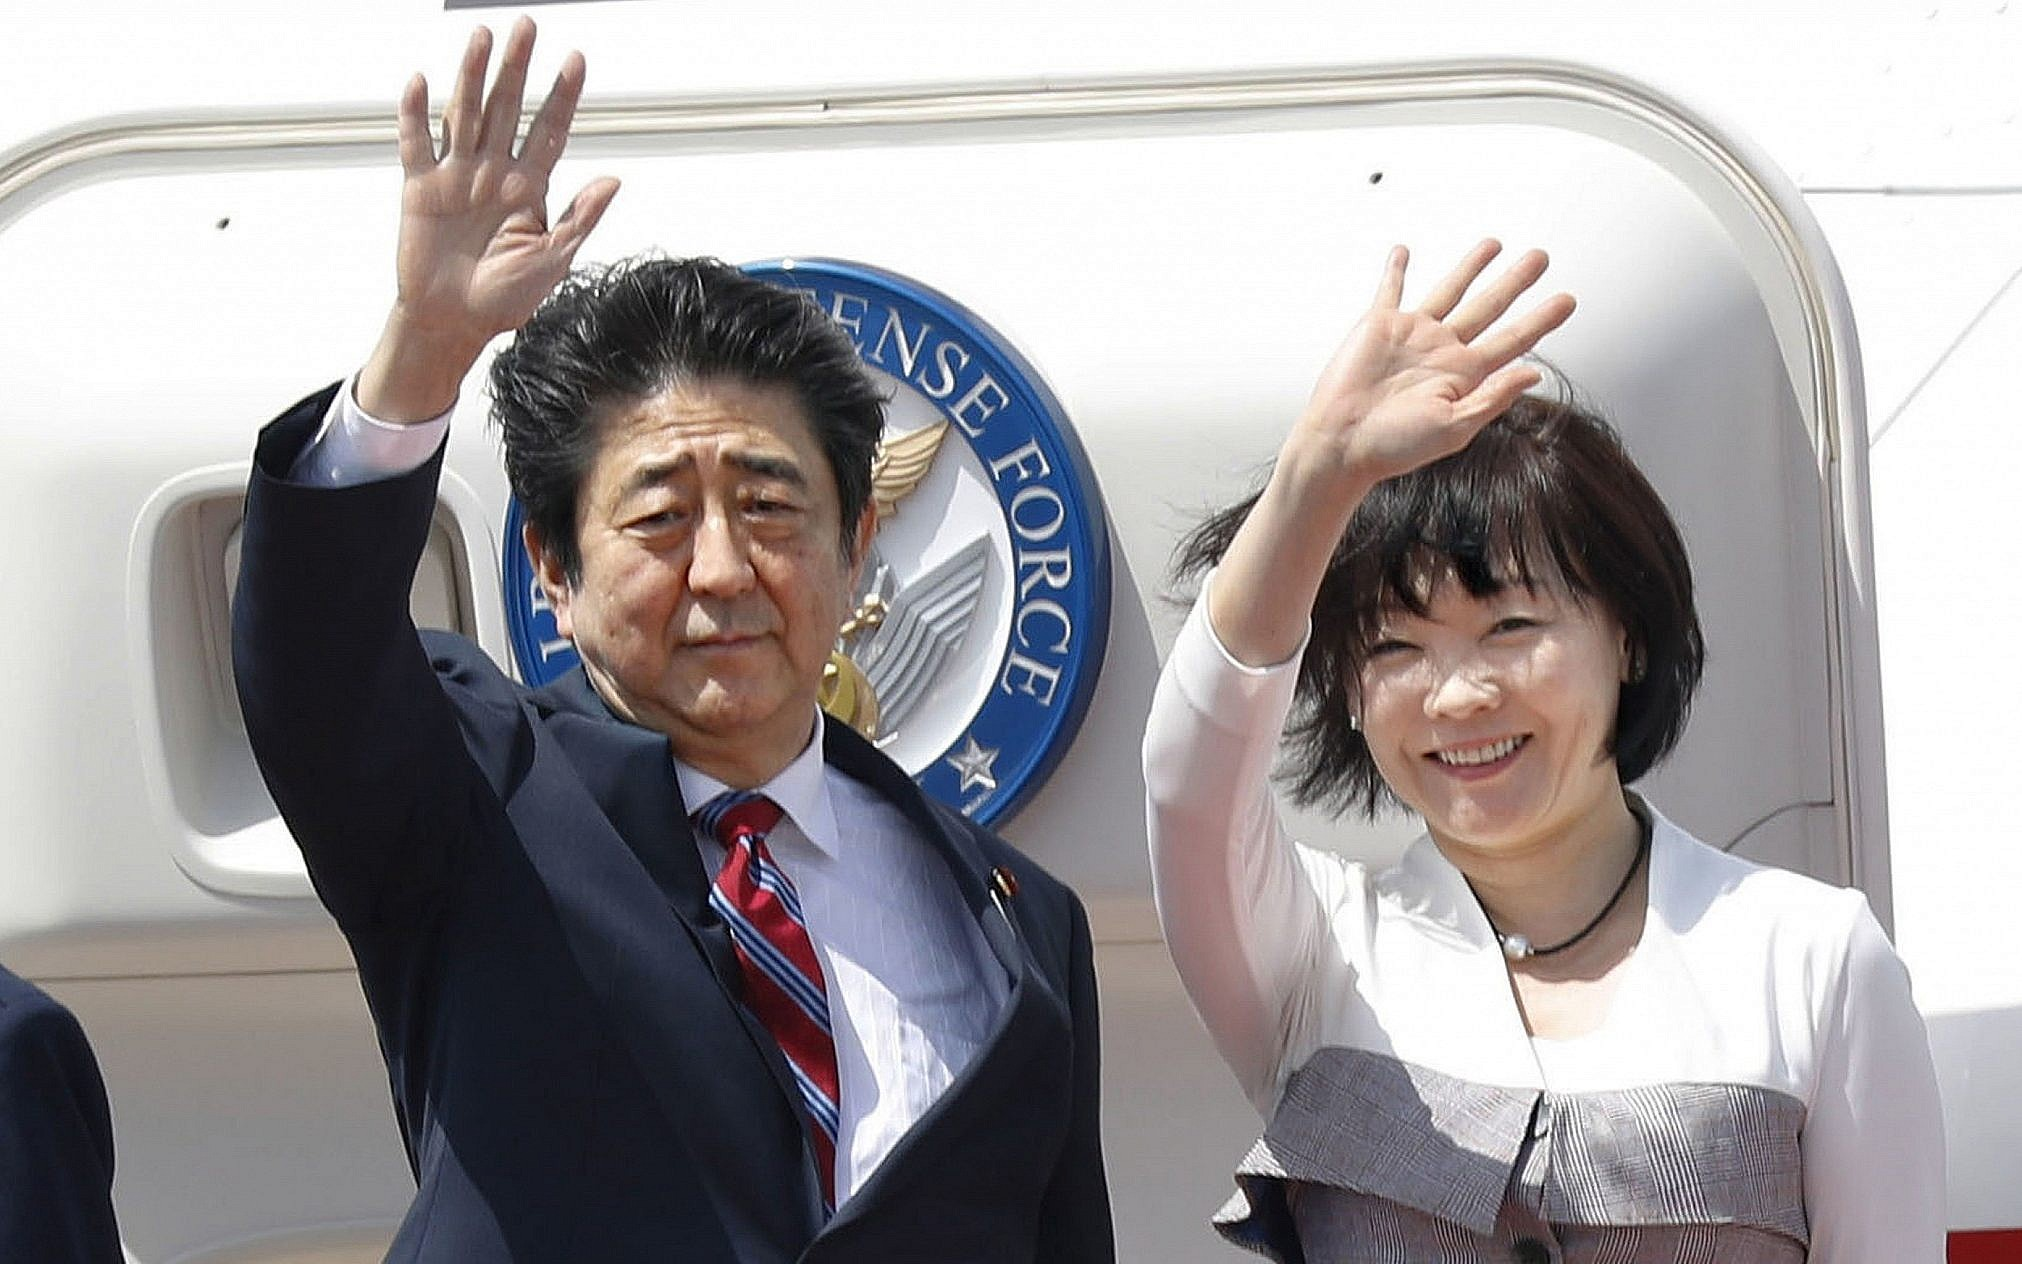 japanese-primeminister-wife-naked-pics-if-marcus-patrick